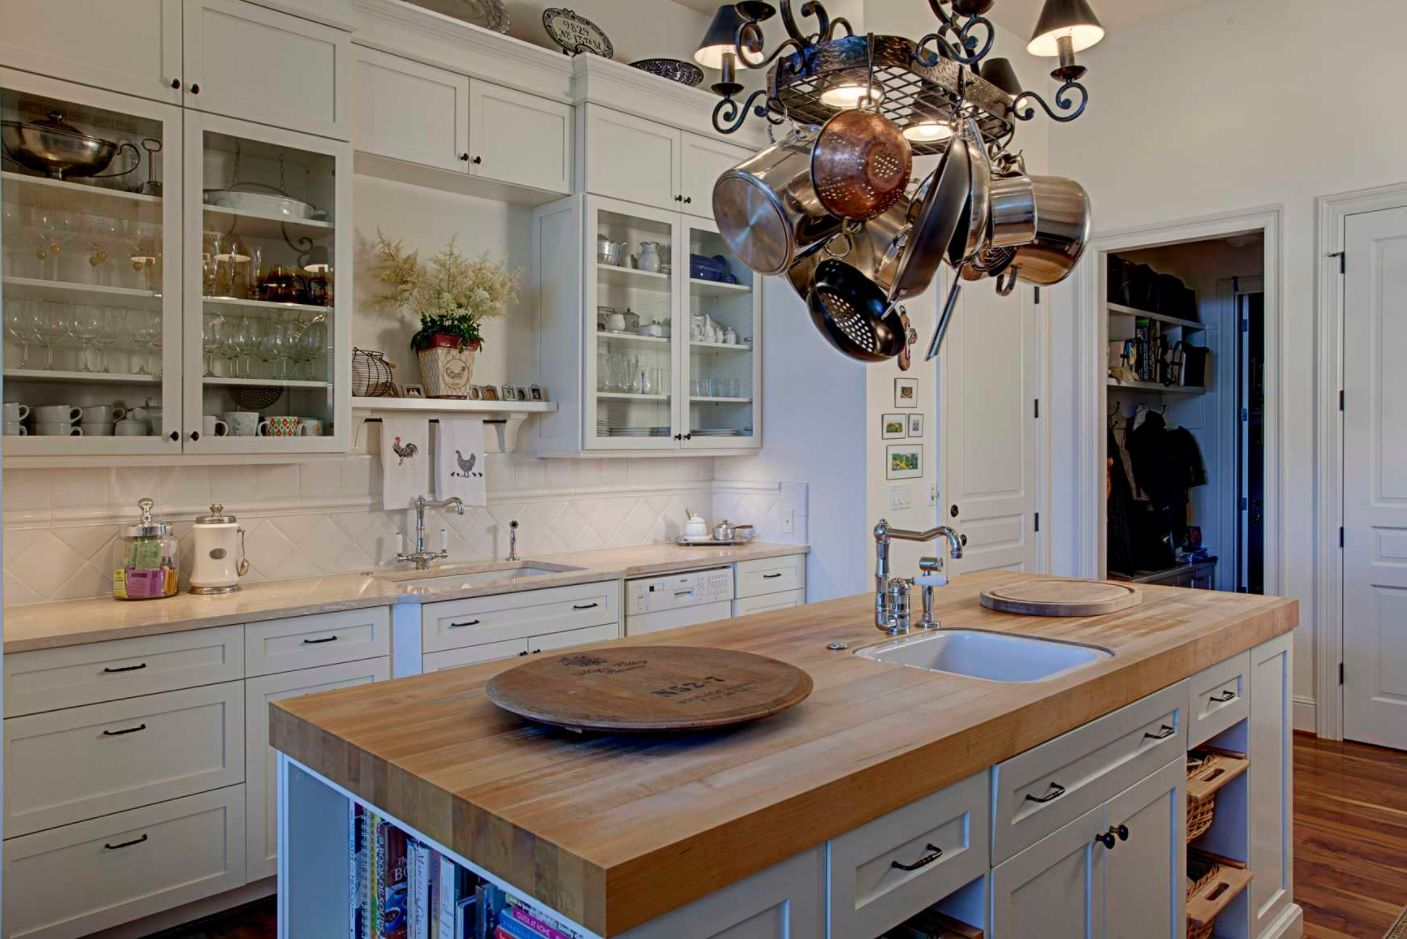 Butcher Block Countertop in Modern Kitchen Interior. White matted furniture facades for the modern Rustic setting